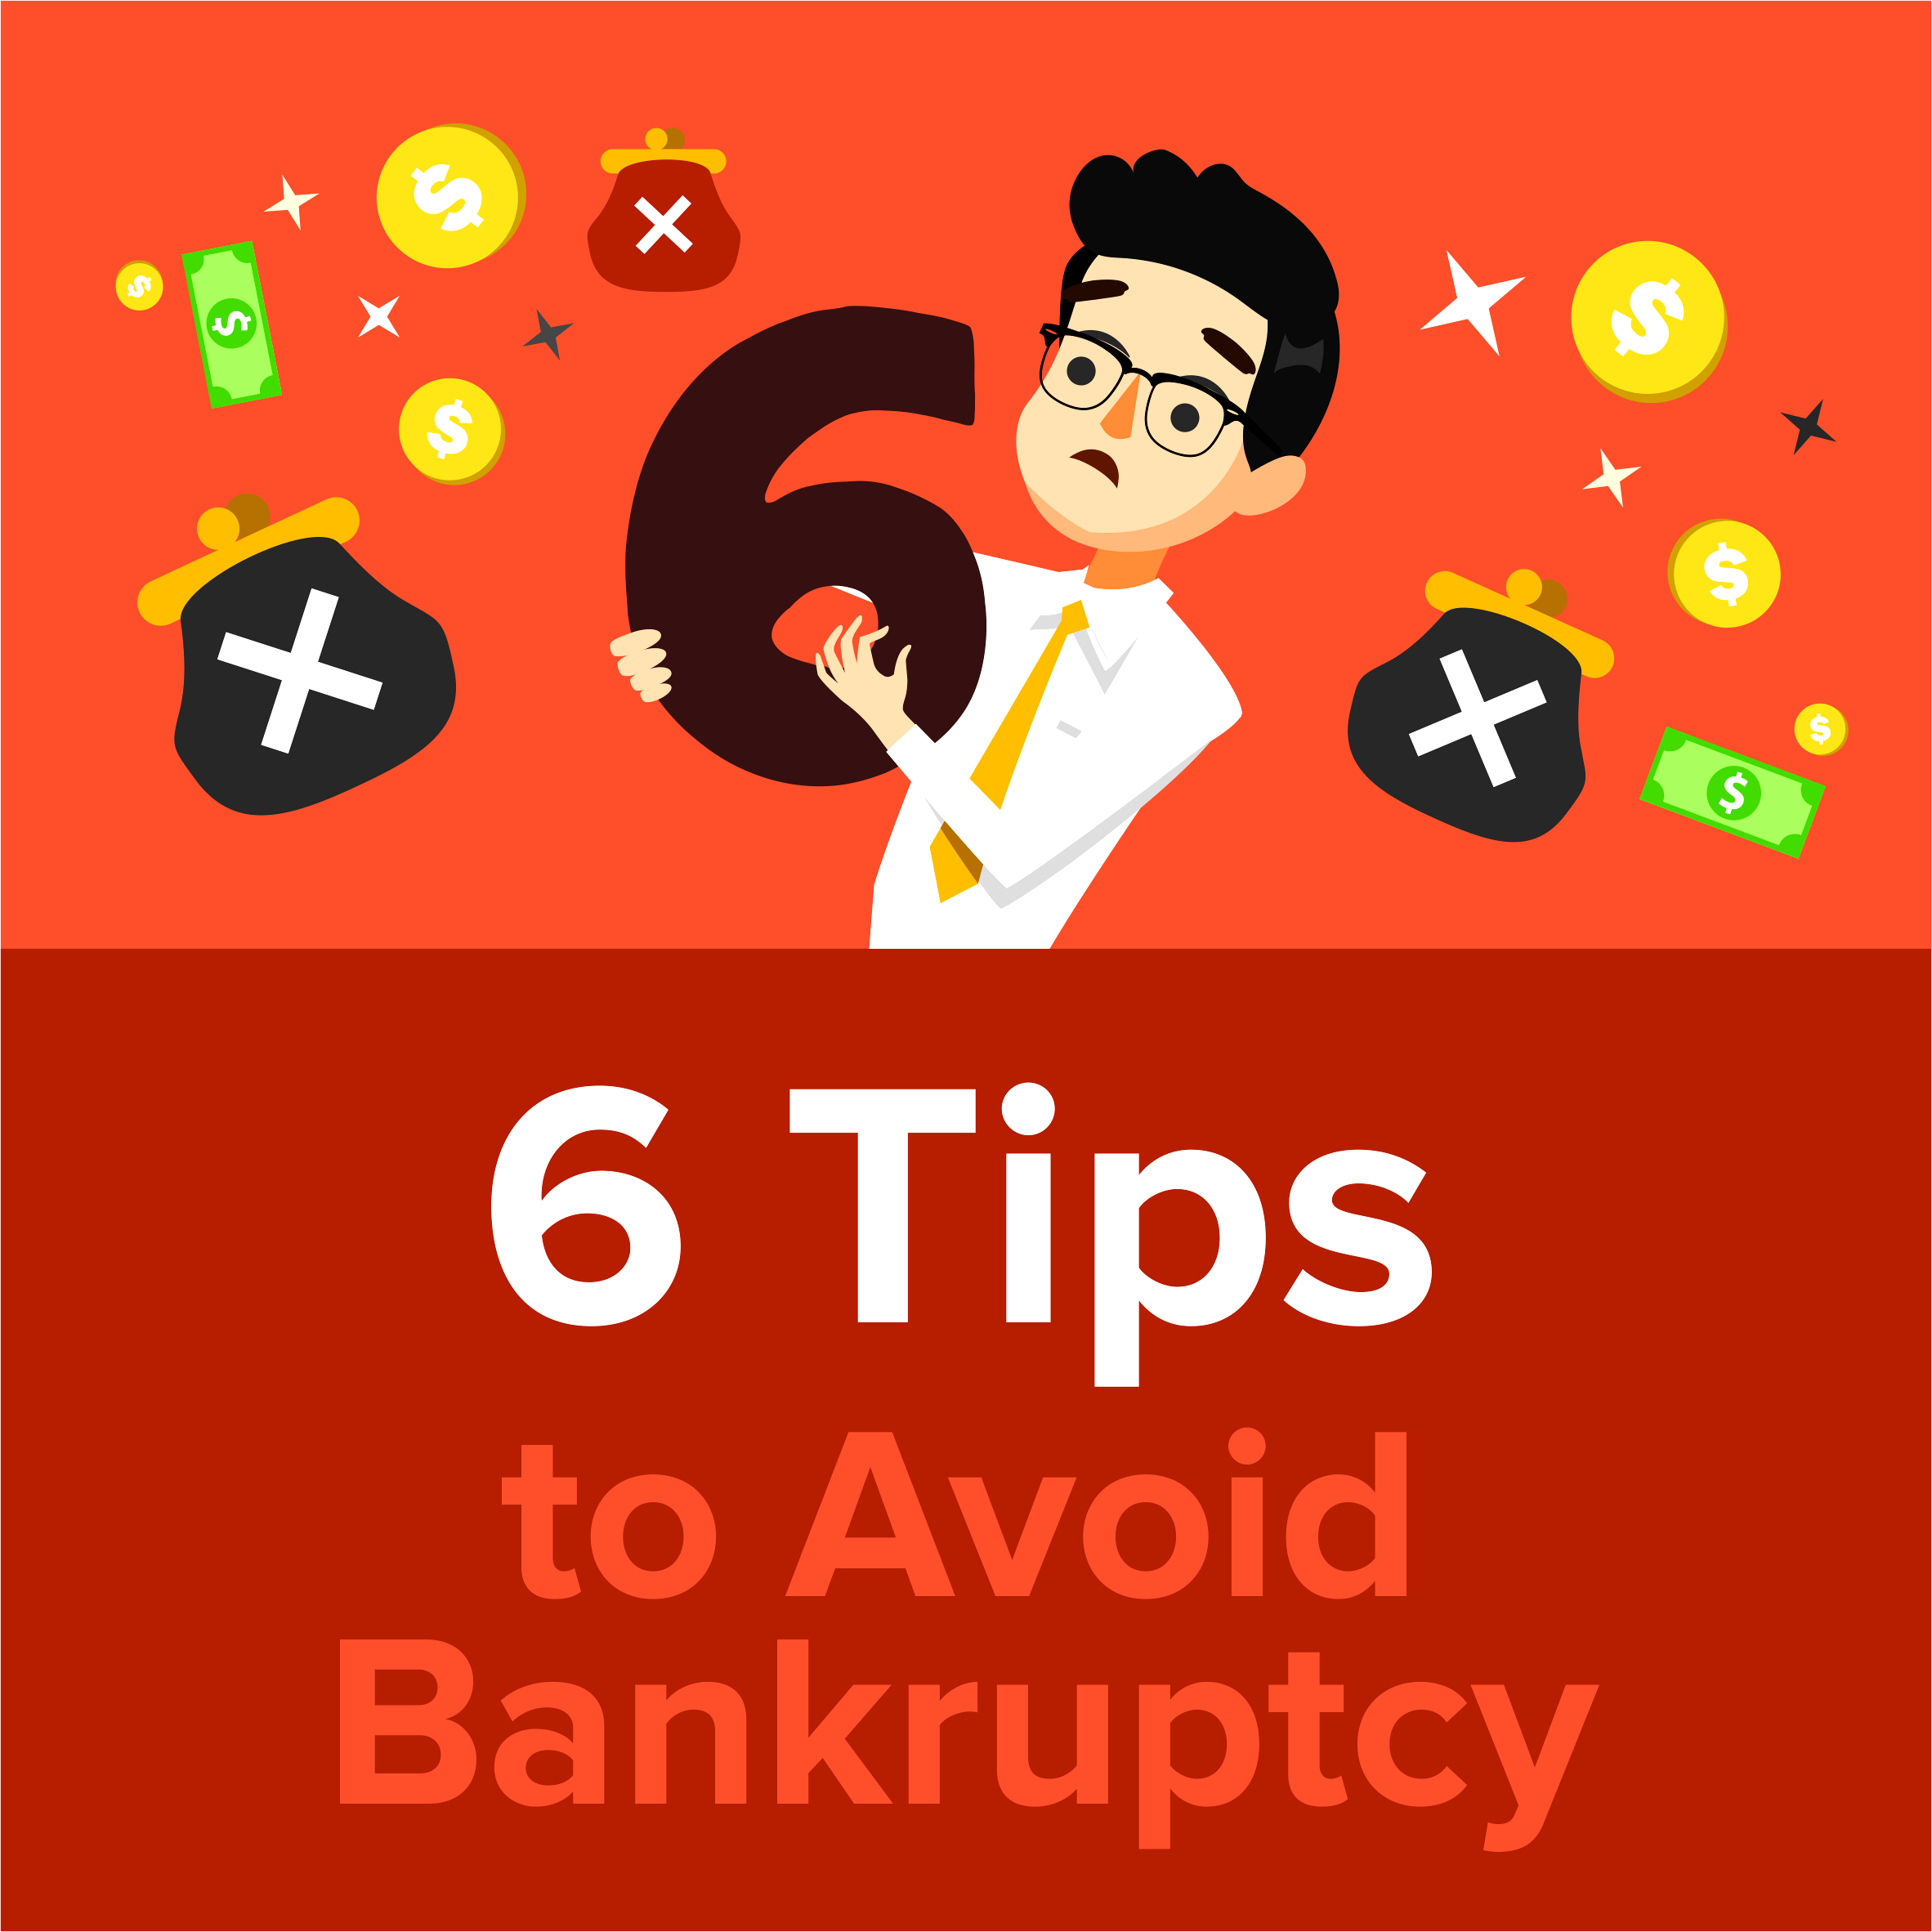 6 Tips to Avoid Bankruptcy